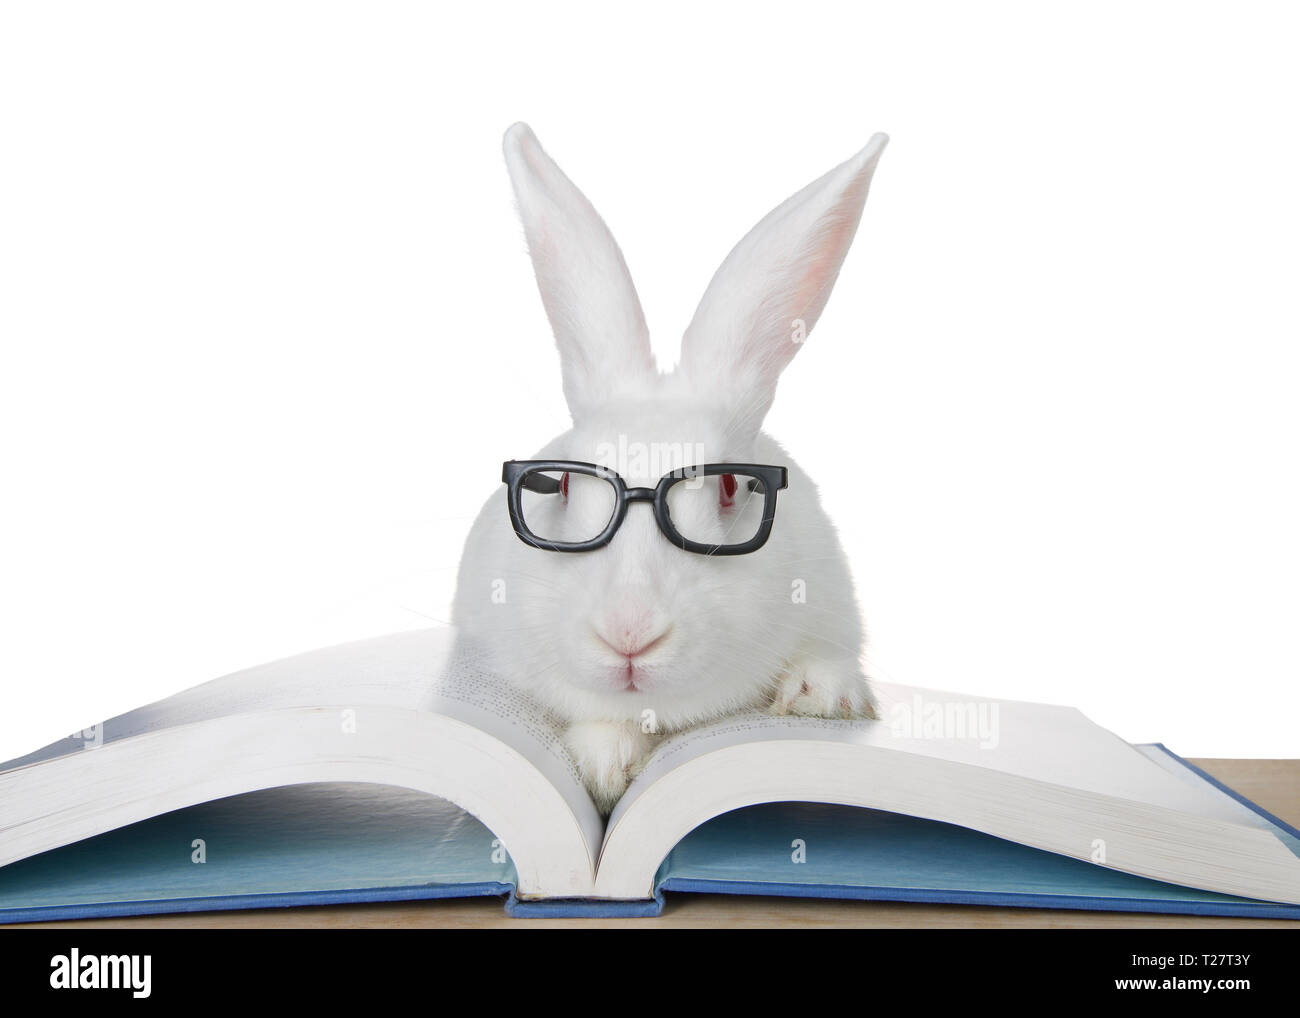 Portrait of an adorable white albino bunny rabbit wearing intelligent geeky looking black glasses, paws on book looking directly at viewer. Isolated o - Stock Image